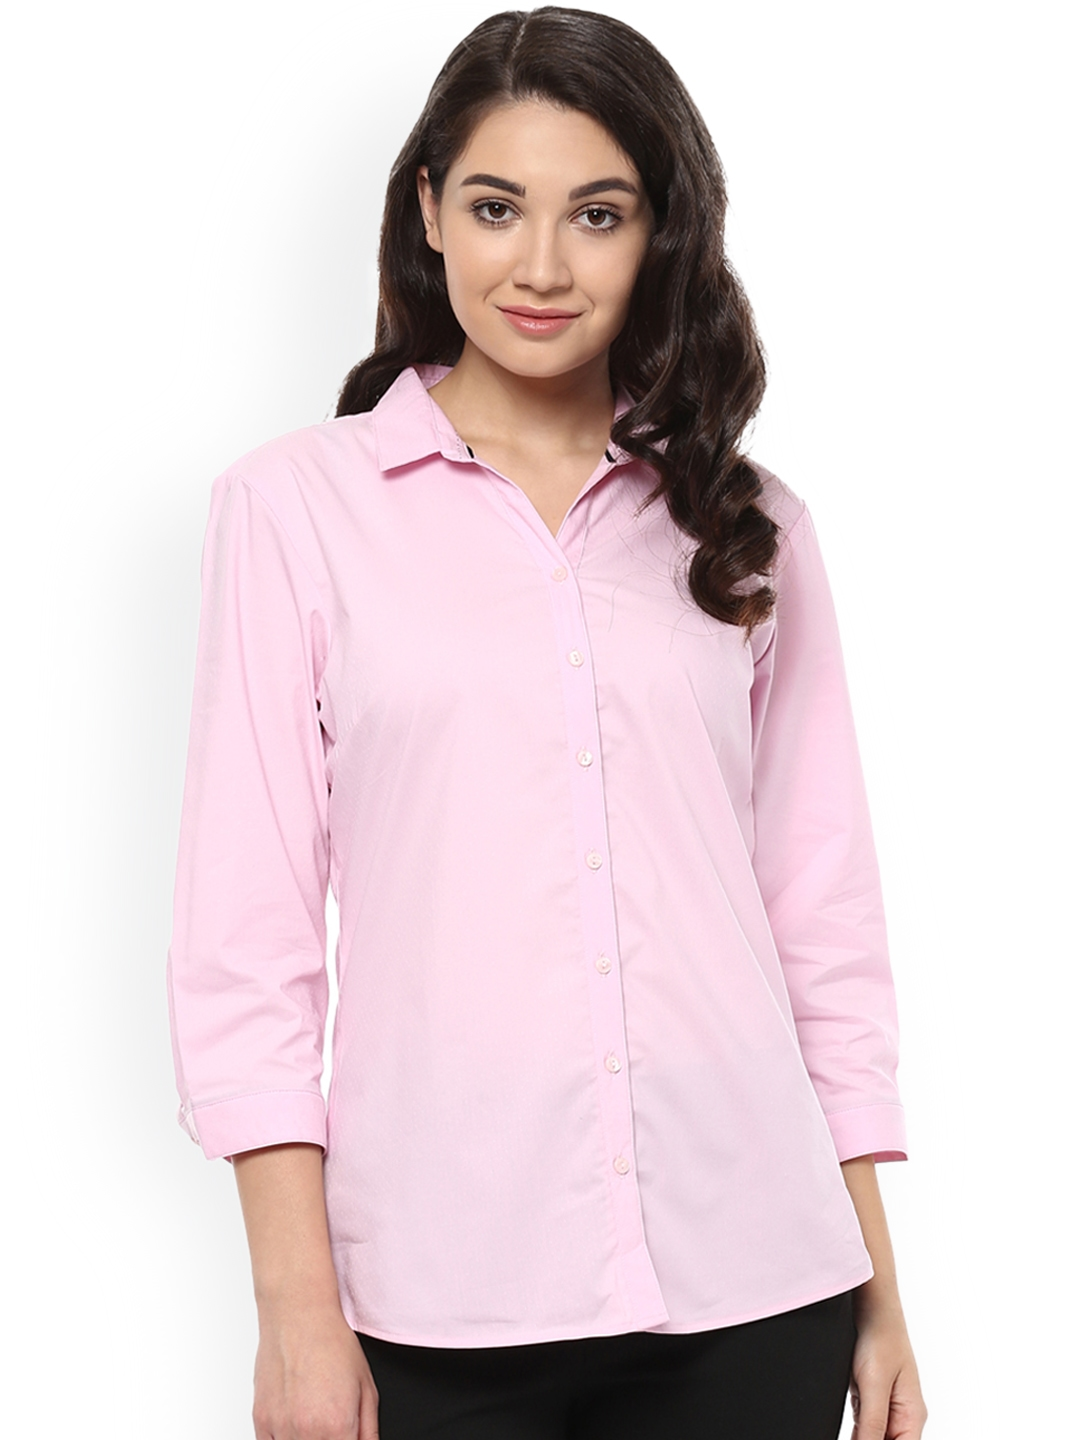 Allen Solly Woman Pink Solid Formal Shirt